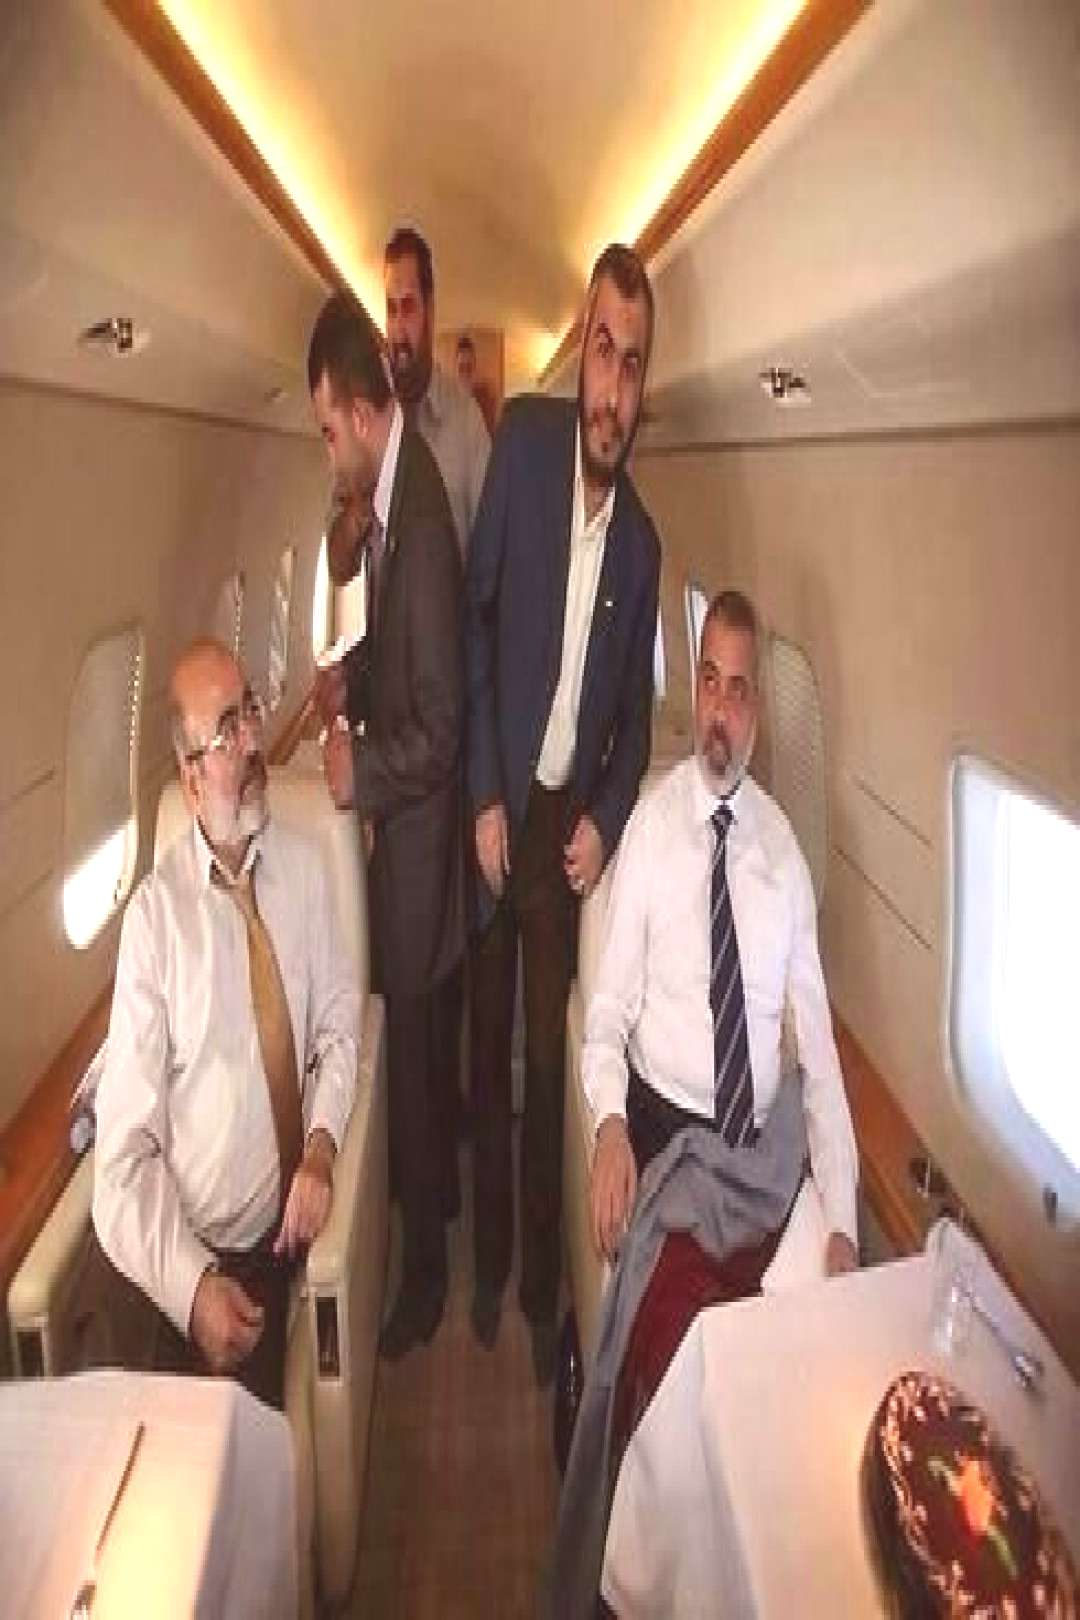 Private jets, restaurants, luxury hotels the good life of senior Hamas officials